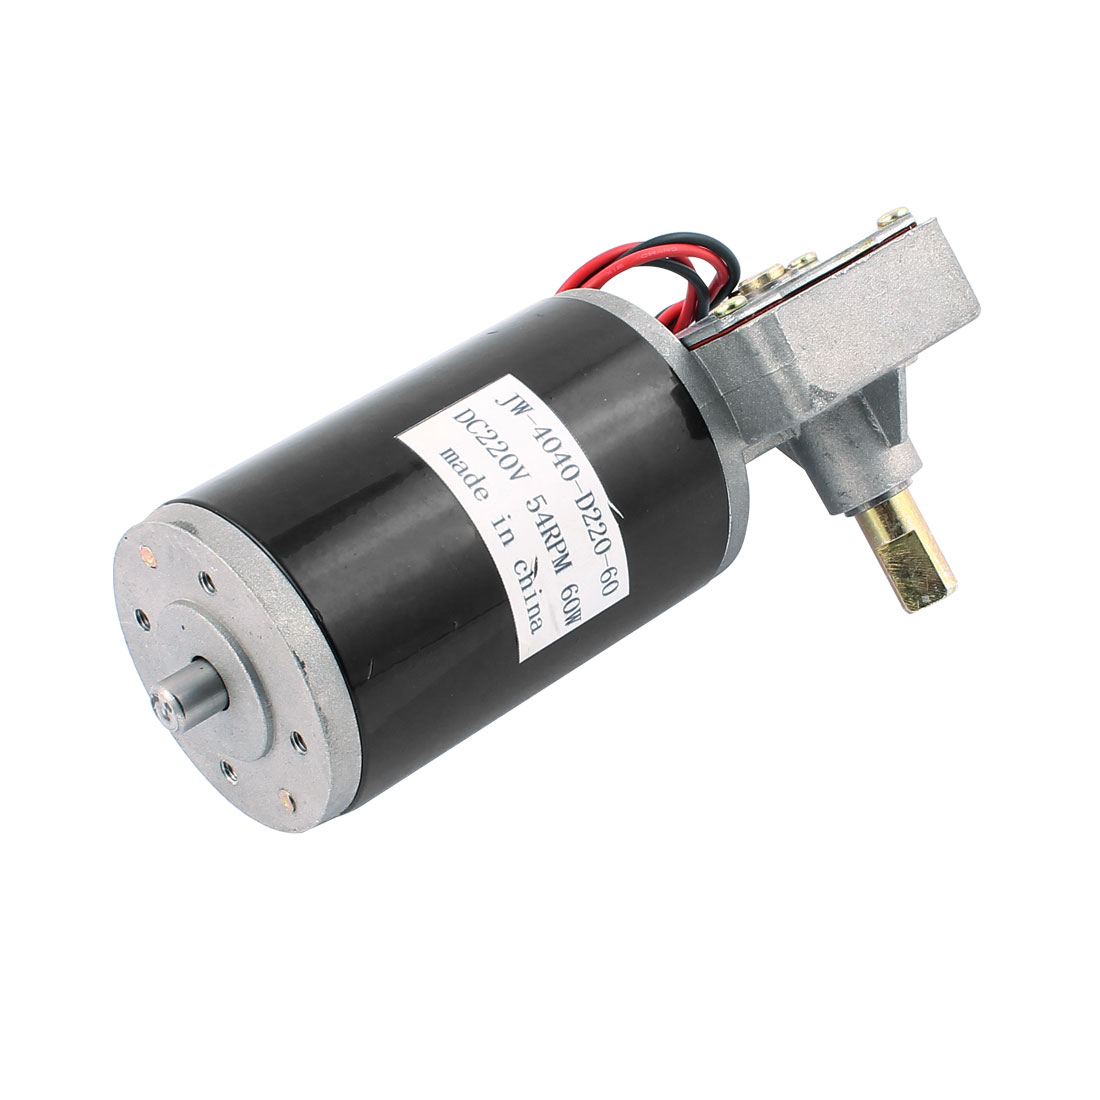 JW-4040-D220-60 DC 220V 54RPM 60W DC Geared Motor for Electronic Game Machine